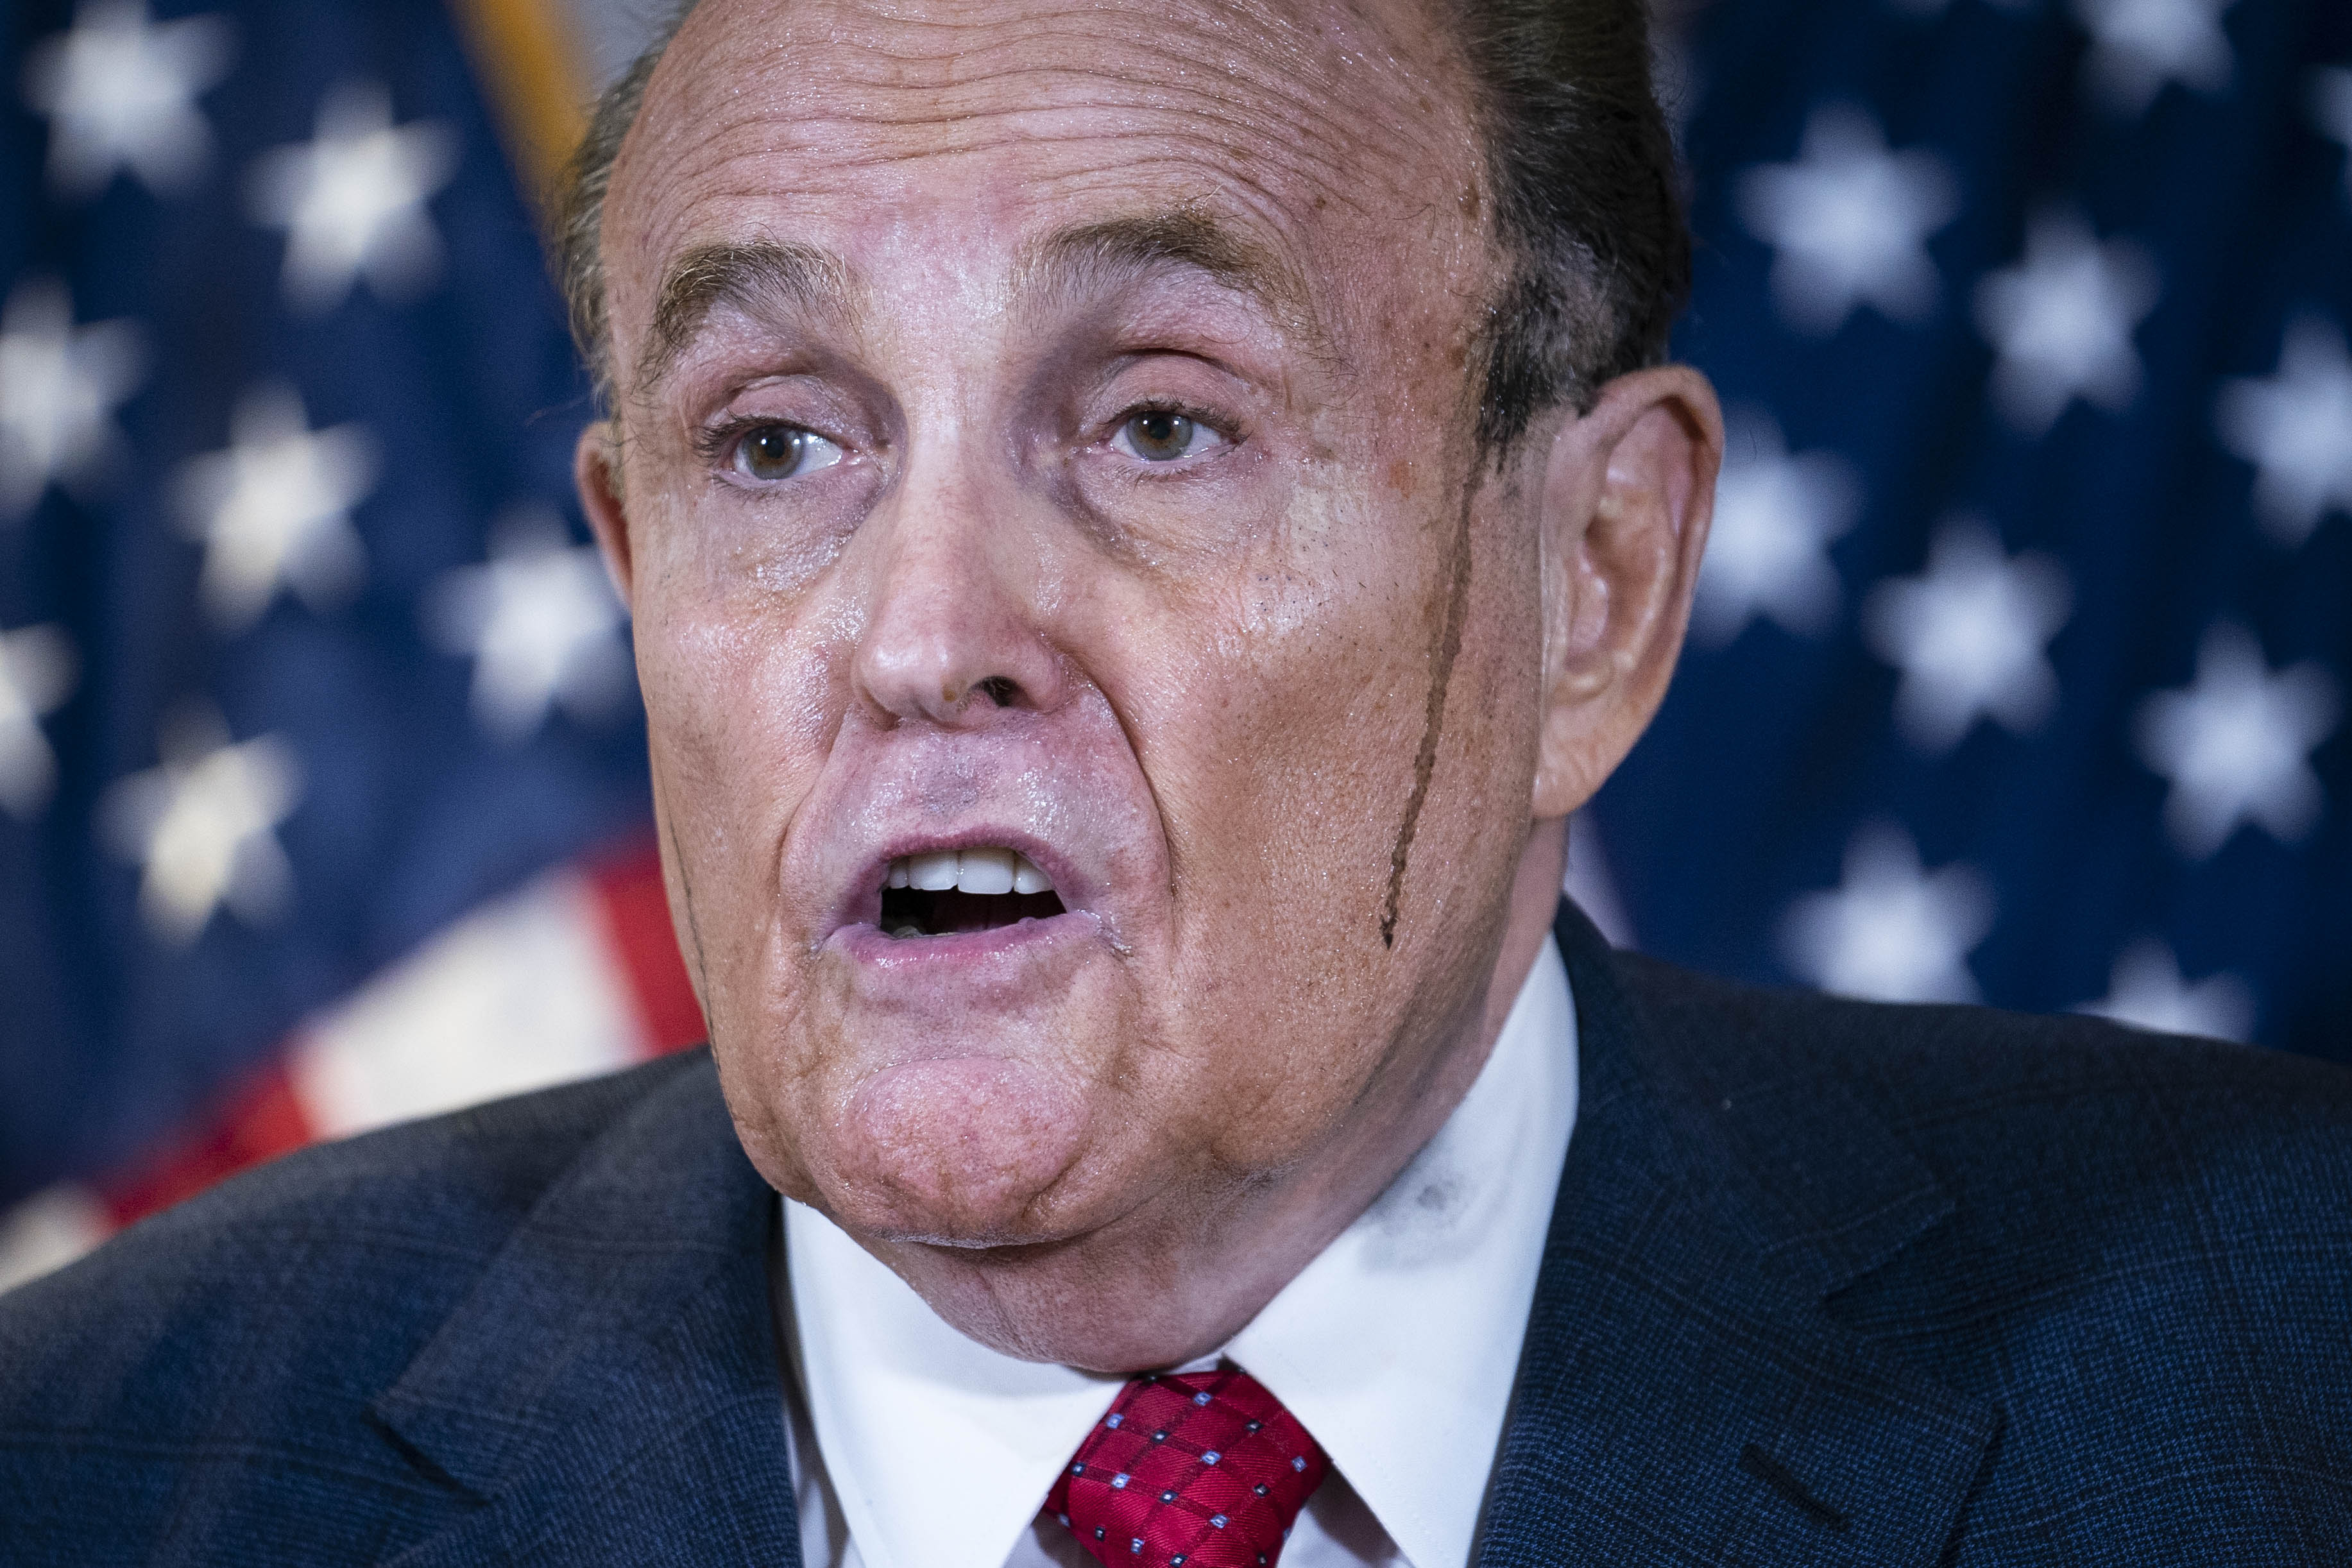 WASHINGTON, UNITED STATES - NOV 19: Former New York City Mayor Rudy Giuliani, lawyer for U.S. President Donald Trump, speaks during a news conference about lawsuits related to the presidential election results at the Republican National Committee headquarters in Washington, D.C., on Thursday Nov. 19, 2020. (Photo by Sarah Silbiger for The Washington Post via Getty Images)